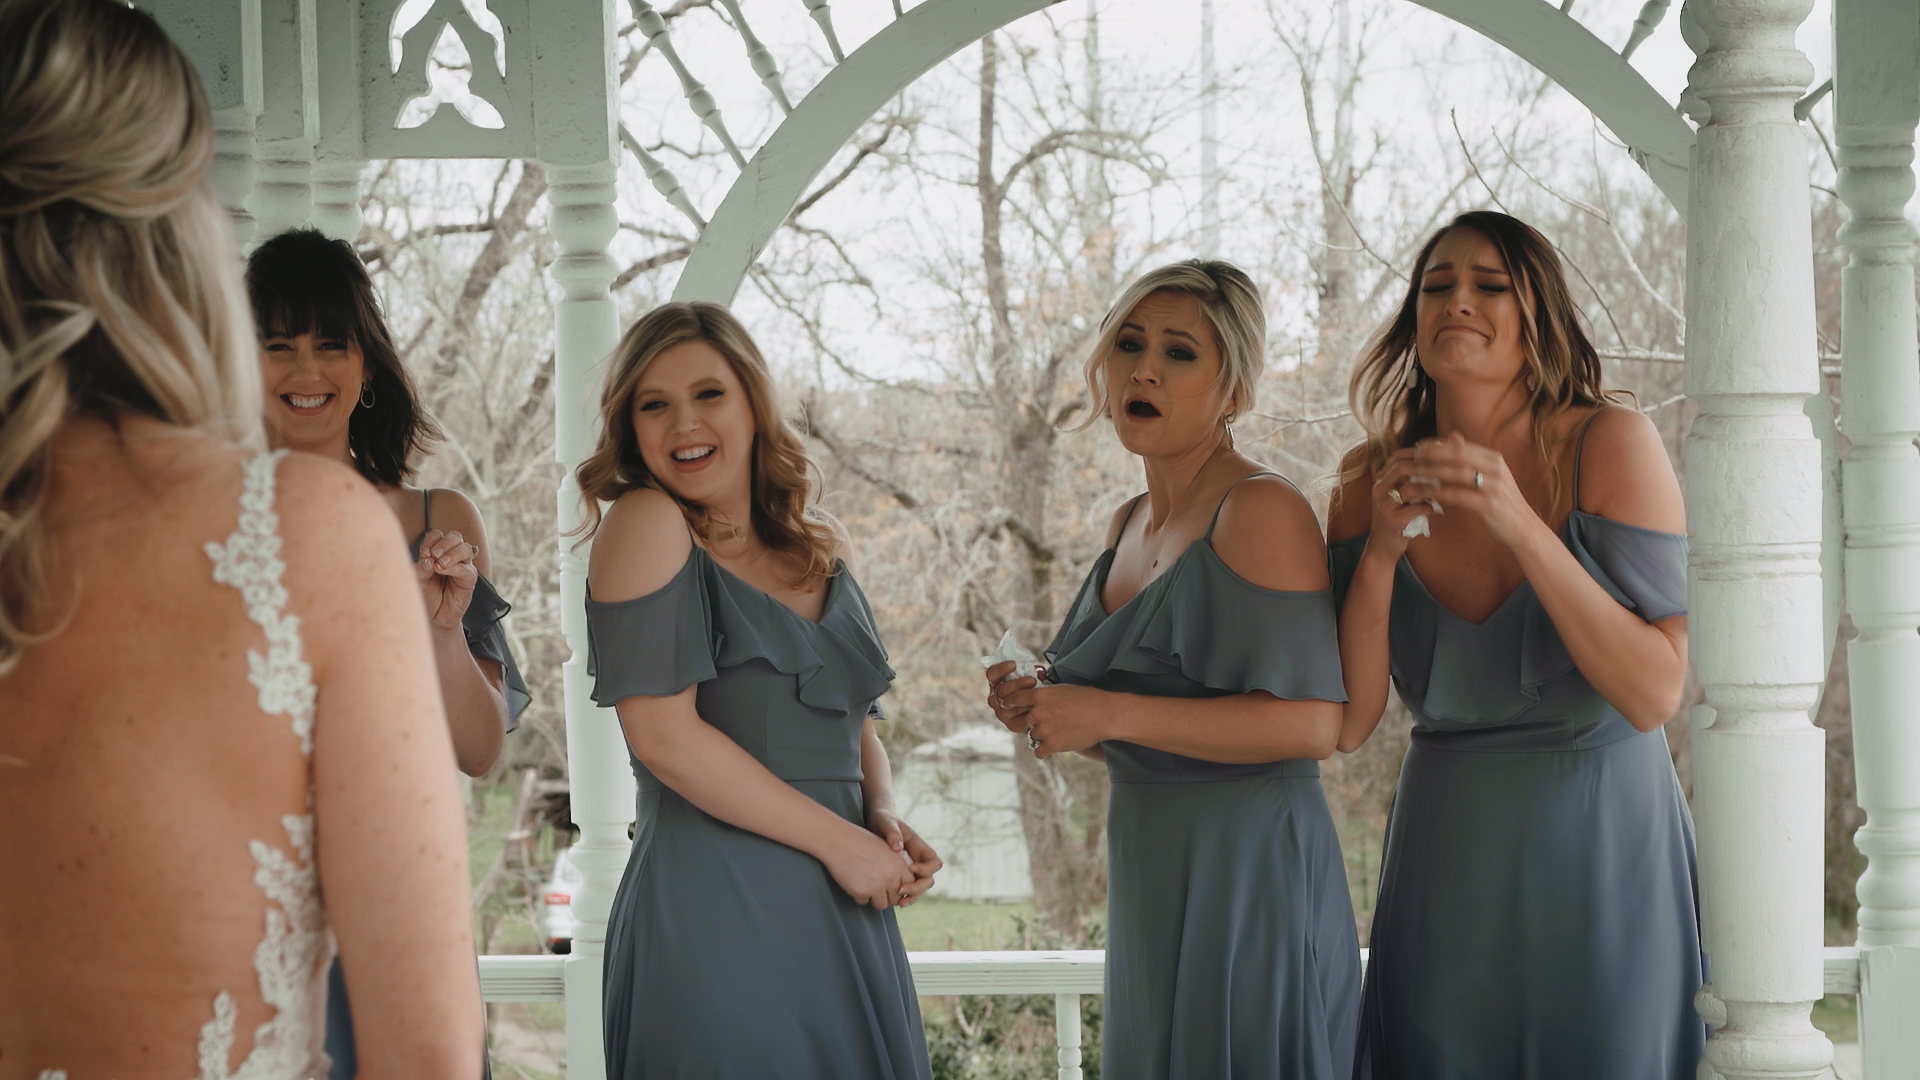 Barr_Mansion_Austin_Wedding_Videographer_New_Beginnings_Films_31.png